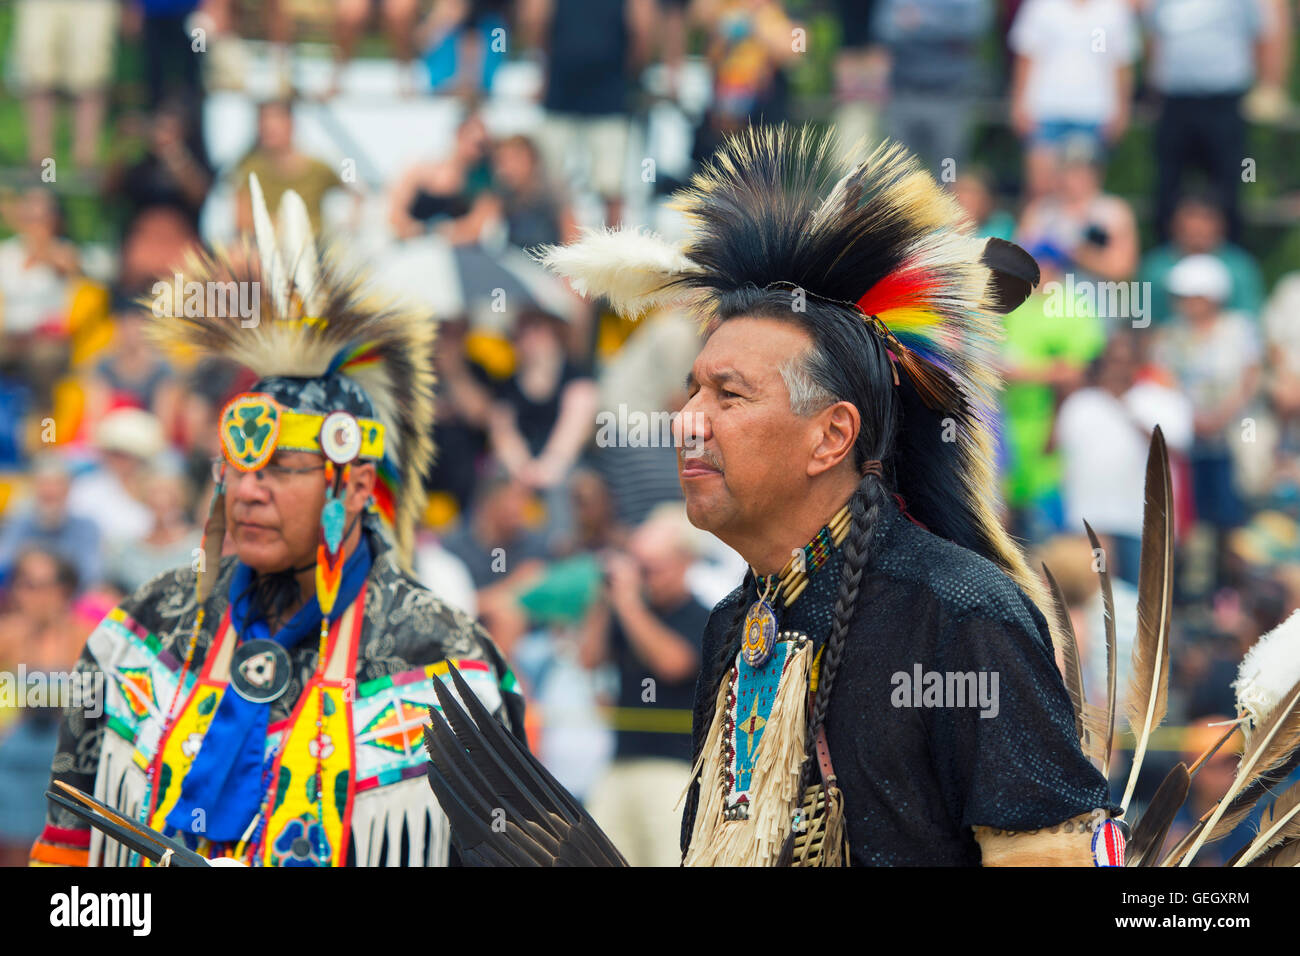 Pow Wow Native Male Dancer in Traditional Costume Six Nations of the Grand River Champion of Champions Powwow, Ohsweken - Stock Image